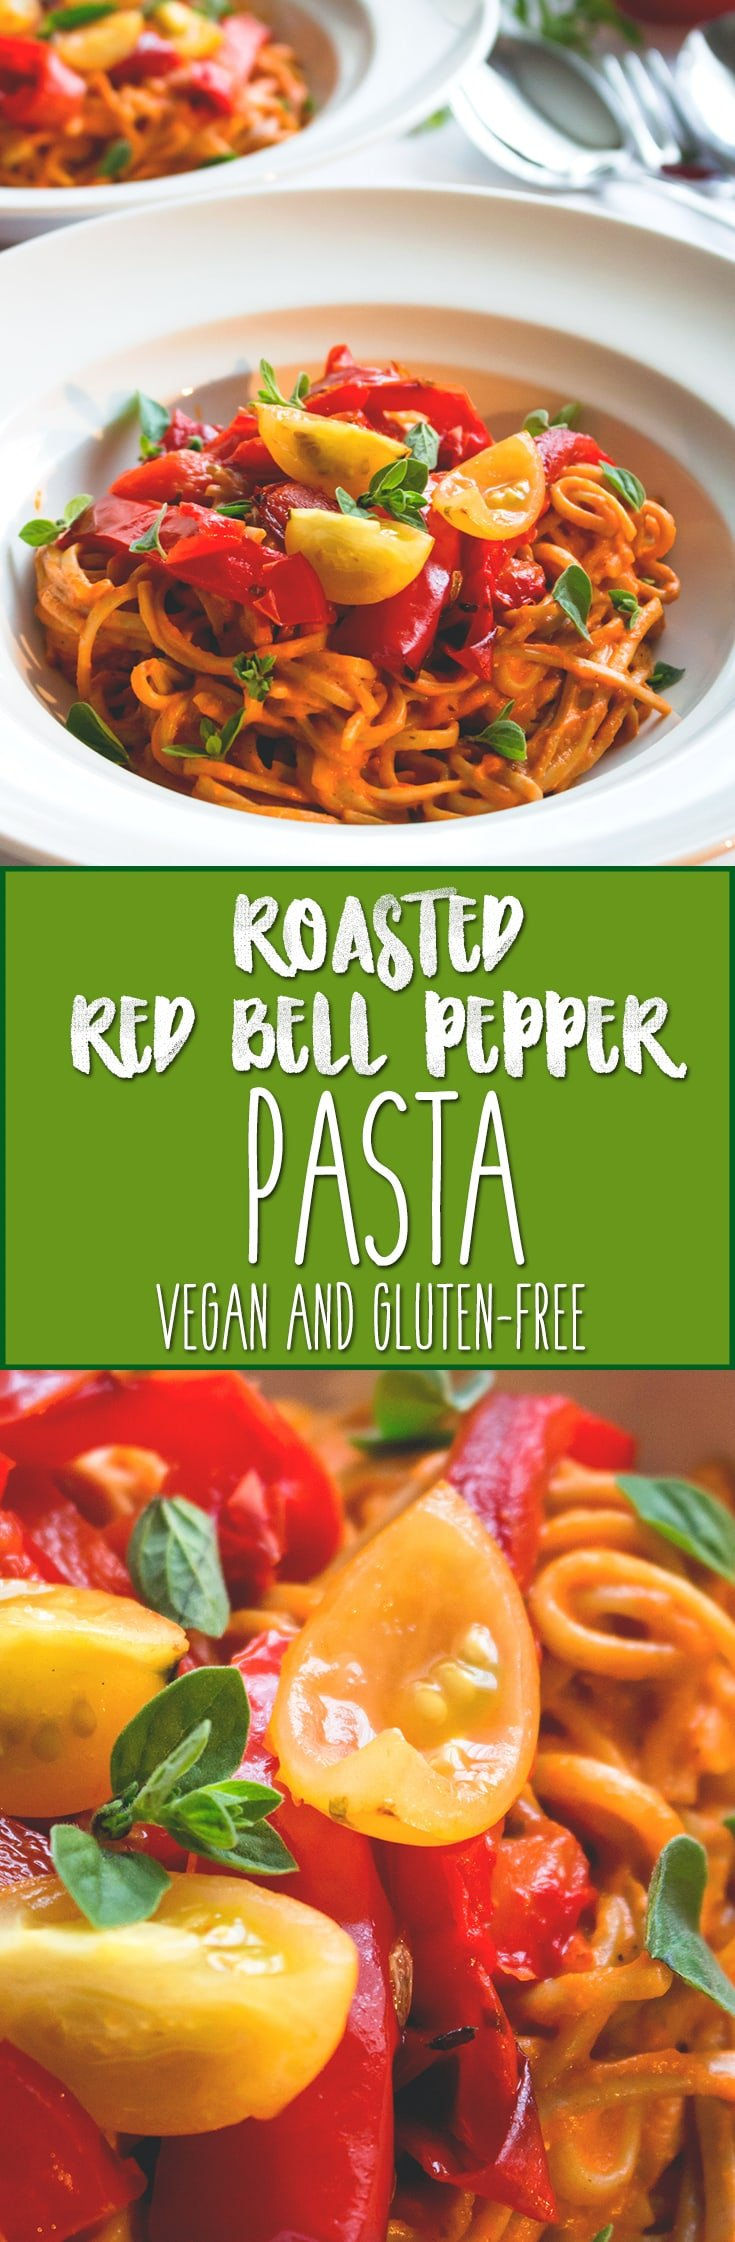 Roasted Red Bell Pepper Pasta - delicious, creamy, filling, and full of flavor! This is one of my most favorite vegan pasta recipes. | thehealthfulideas.com